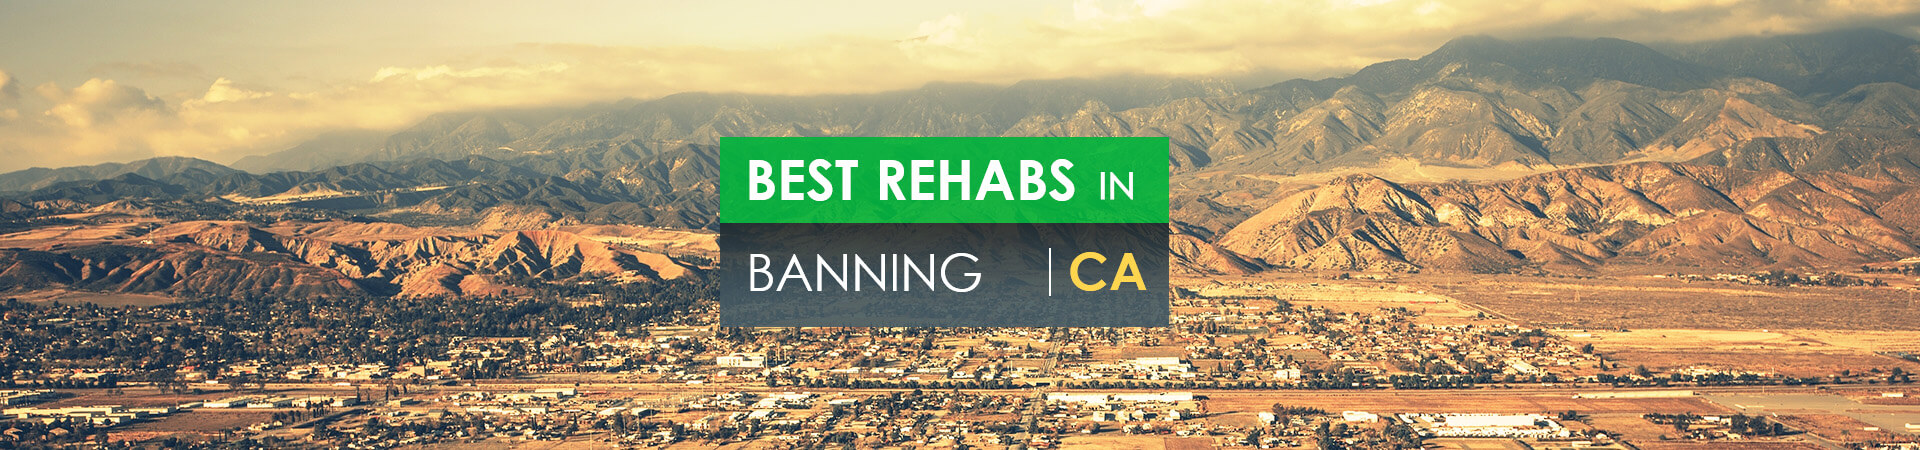 Best rehabs in Banning, CA